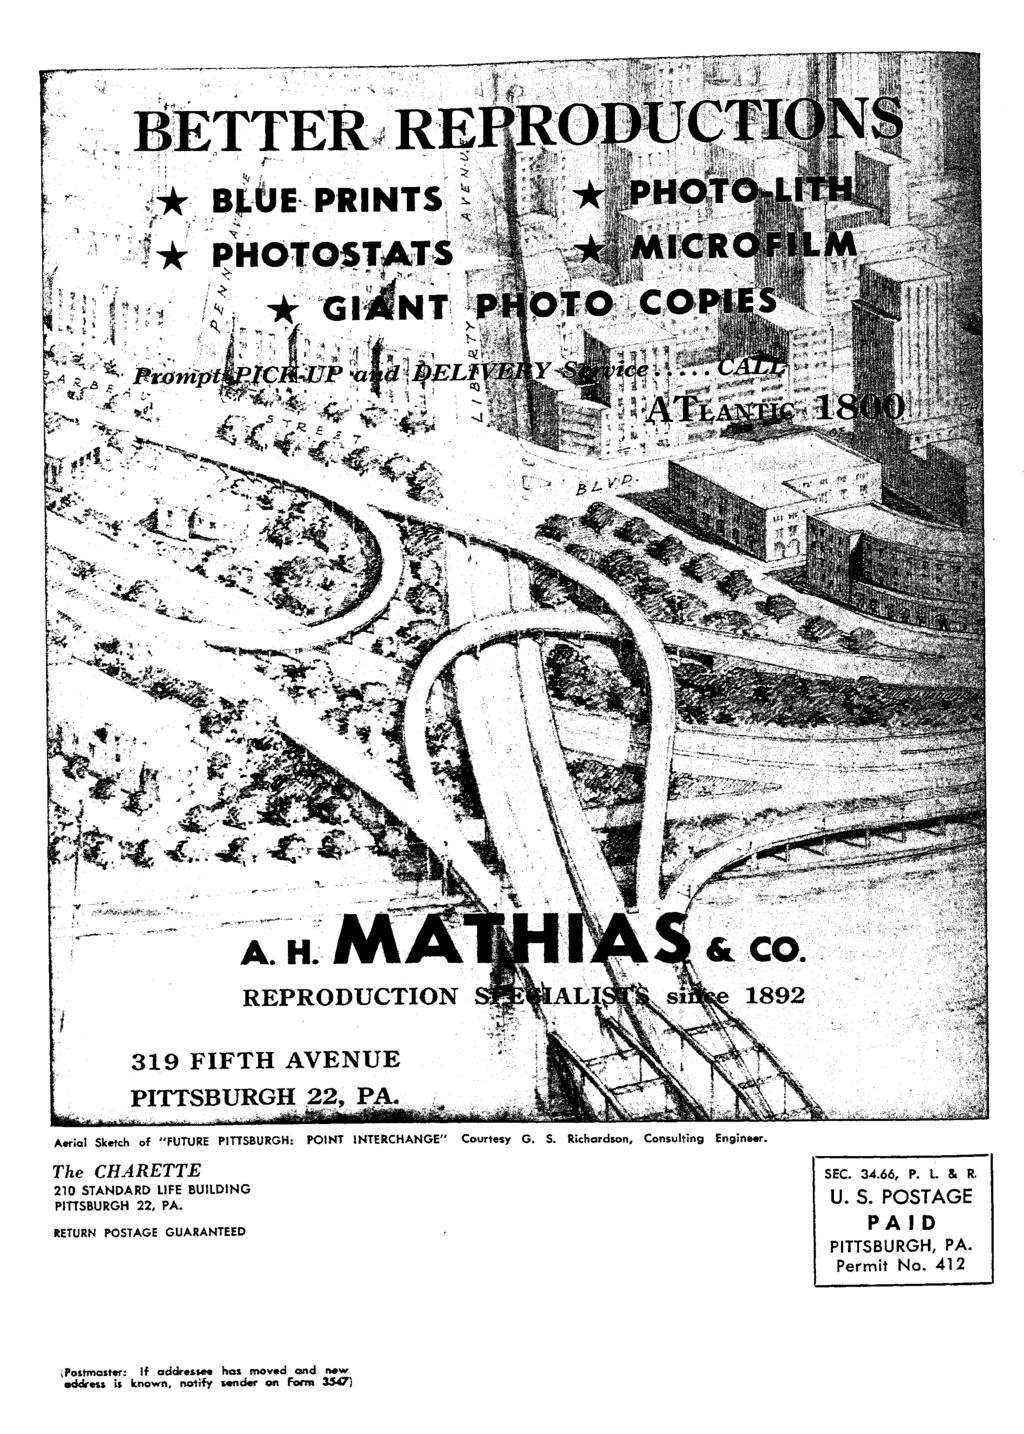 "U 1 BETTER RE * BLUE PRINTS 5 Ä ^ H ö S f Etxfmpi 1» ^ésà h ^ y fri. y f?/- w A 319 FIFTH AVENUE PITTSBURGH 22, PA. Aerial Sketch of ""FUTURE PITTSBURGH: POINT INTERCHANGE"" Courtesy G. S. Richardson, Consulting Engineer."